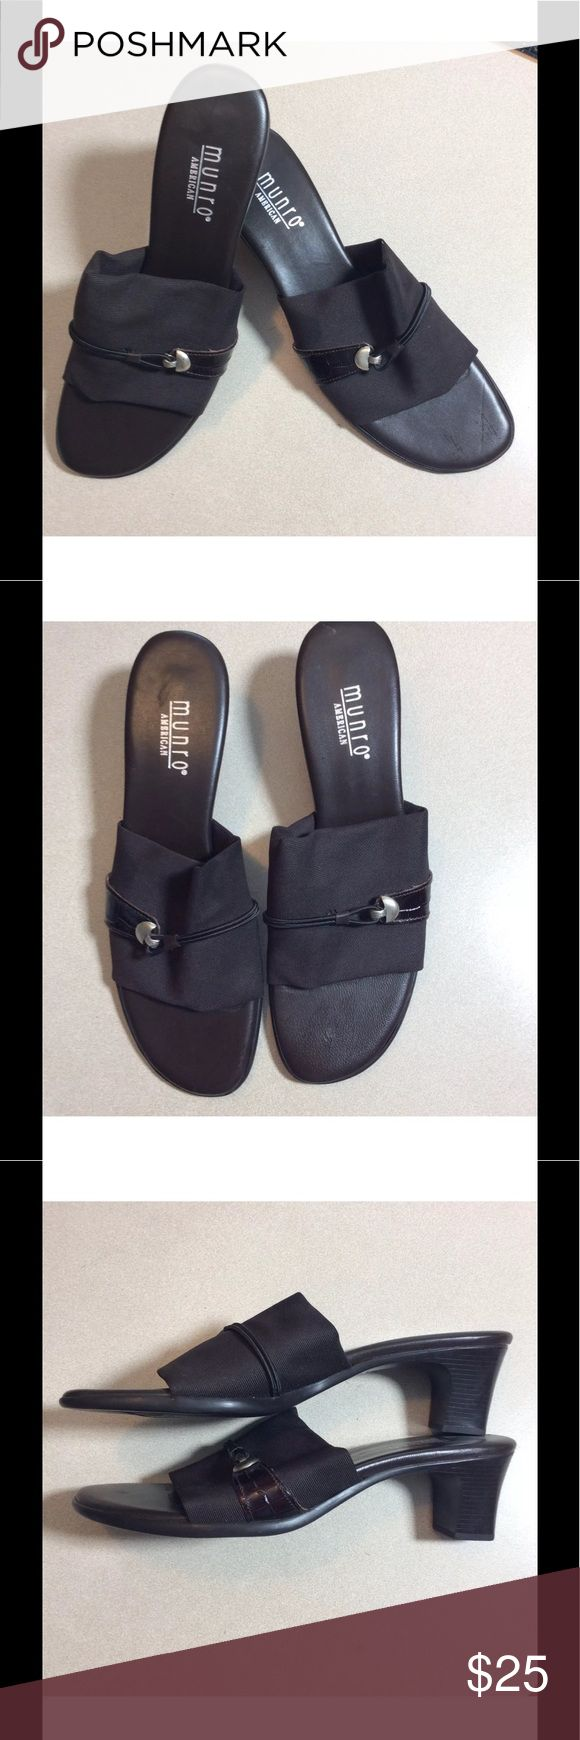 Munro NEVER WORN Size 7.5 SS Black Sandals Very nice Munro Sandals  New never worn  Hidden in Great Grandma's closet  Size 7.5 SS  Measurements are 9 inches on the inside sole 2 3/4 inches wide 2 inch heel Munro Shoes Sandals